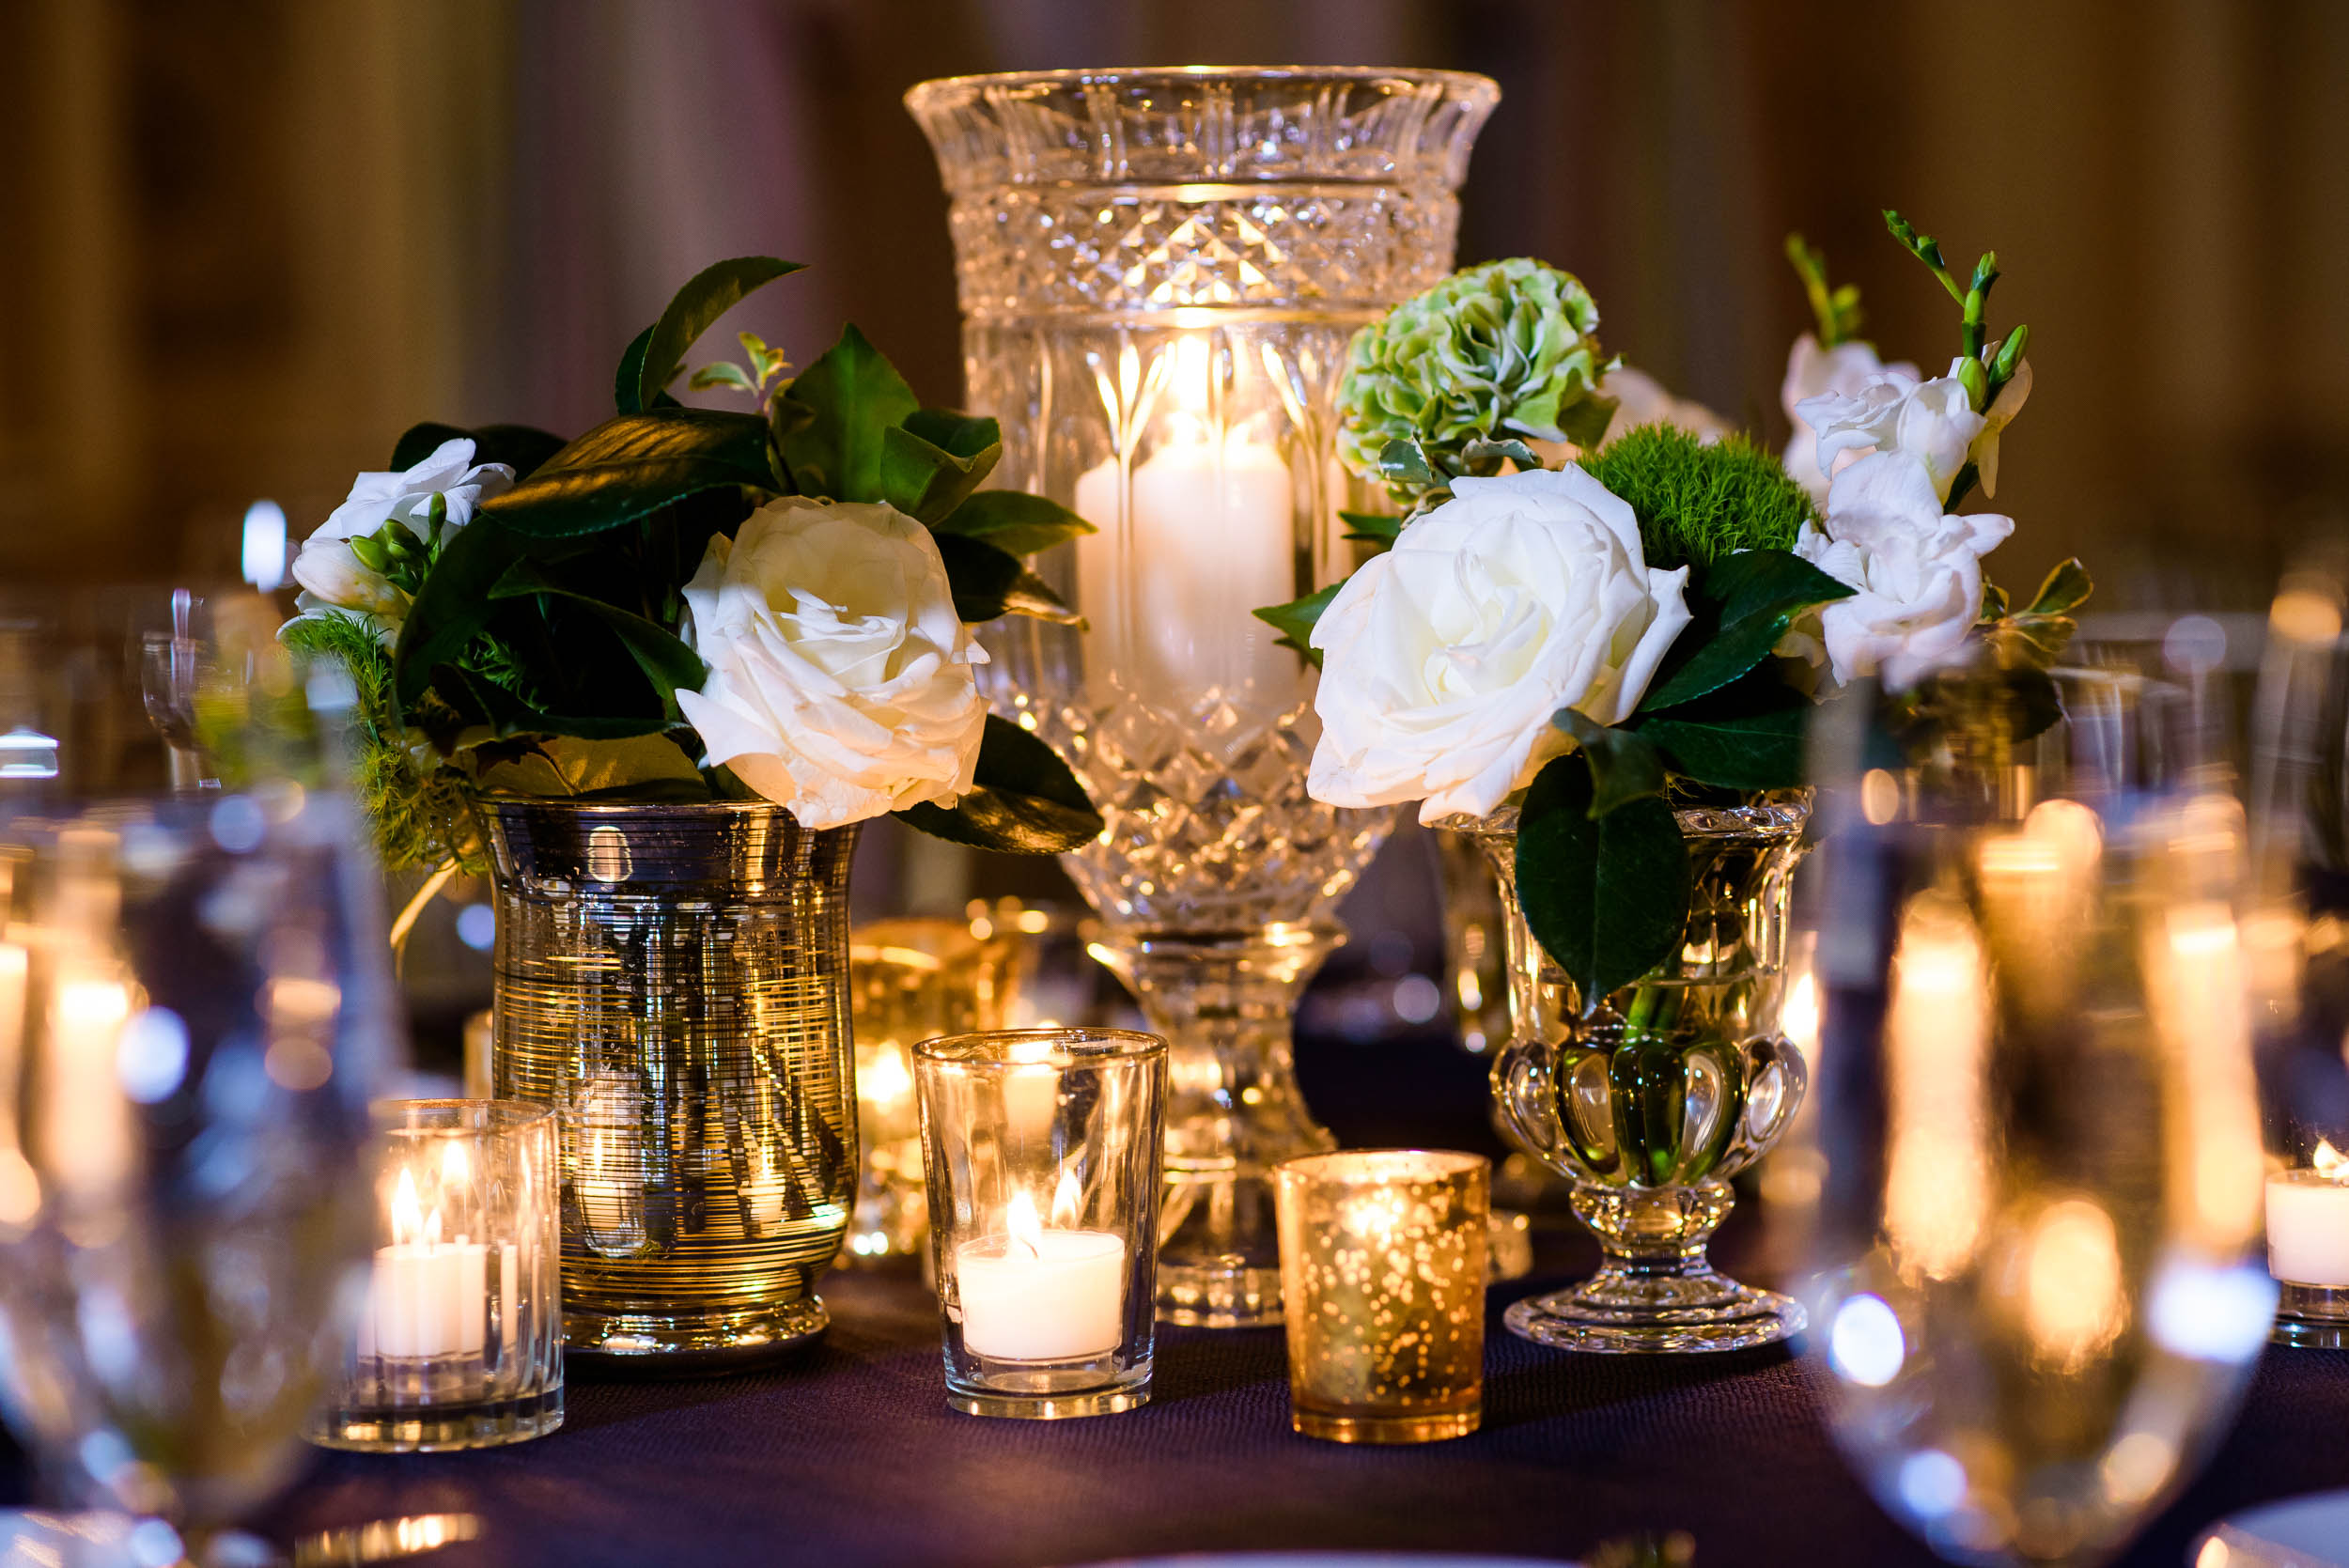 Wedding reception details for luxurious fall wedding at the Chicago Symphony Center captured by J. Brown Photography. See more wedding ideas at jbrownphotography.com!